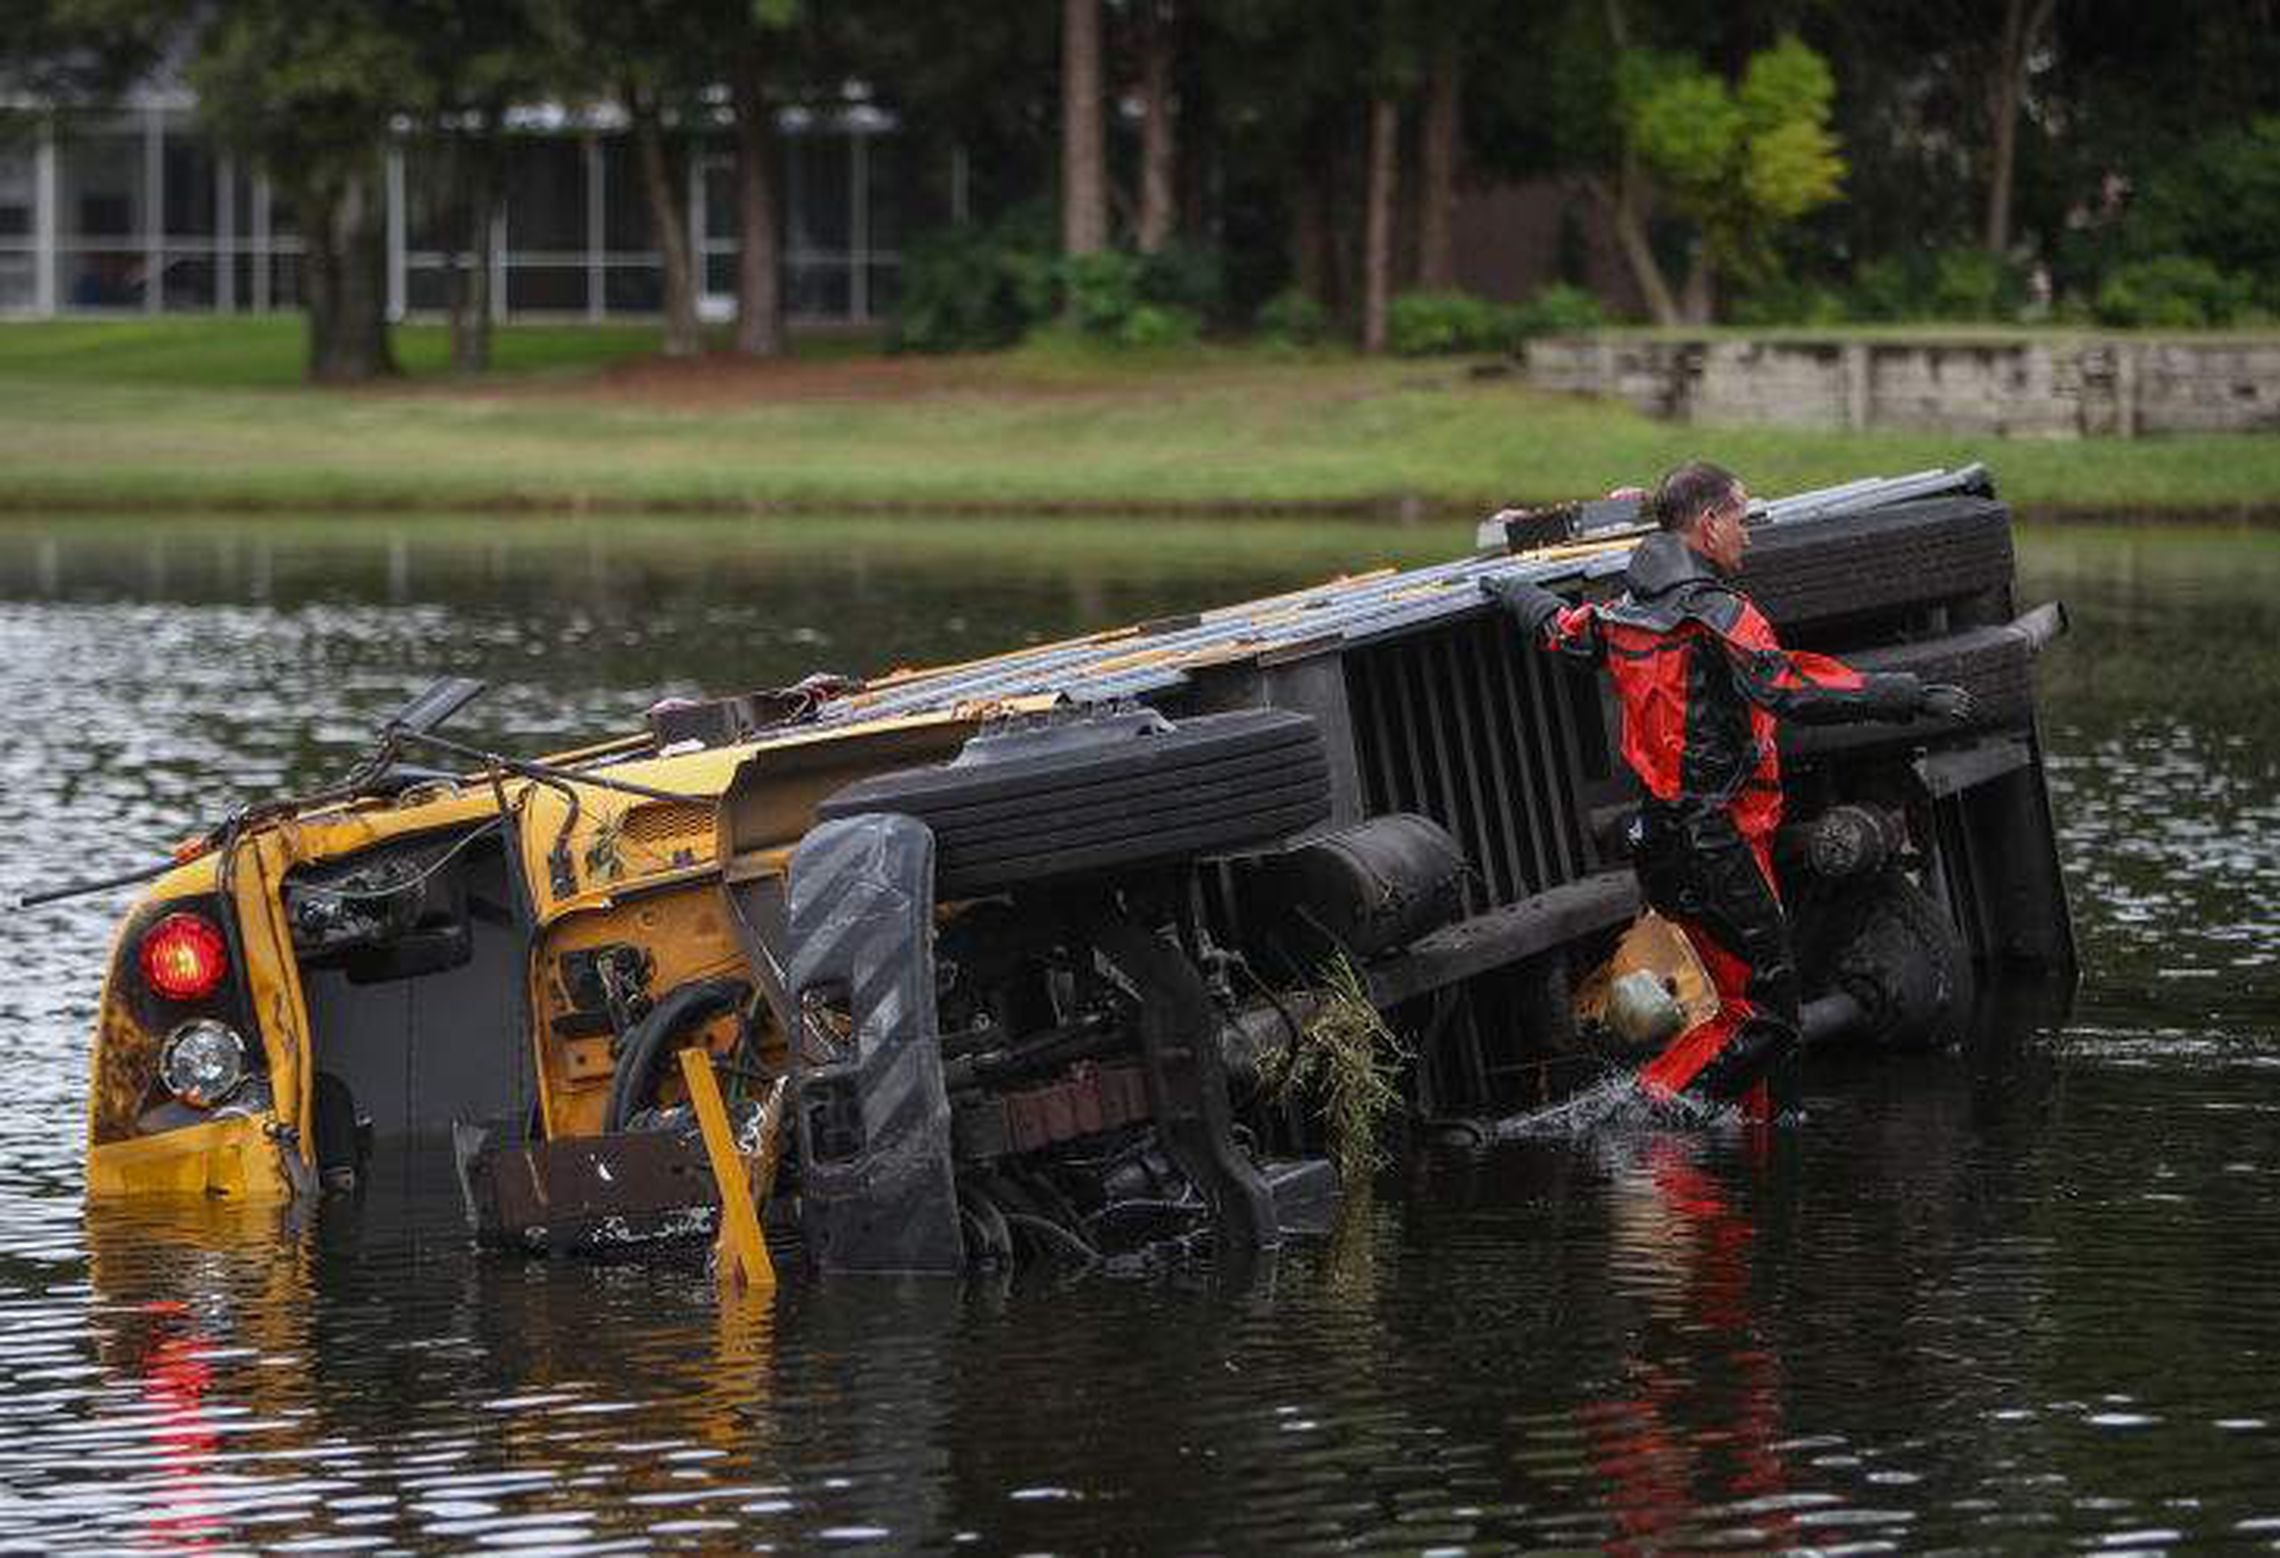 School bus carrying 27 kids plunges into water, 10-year-old